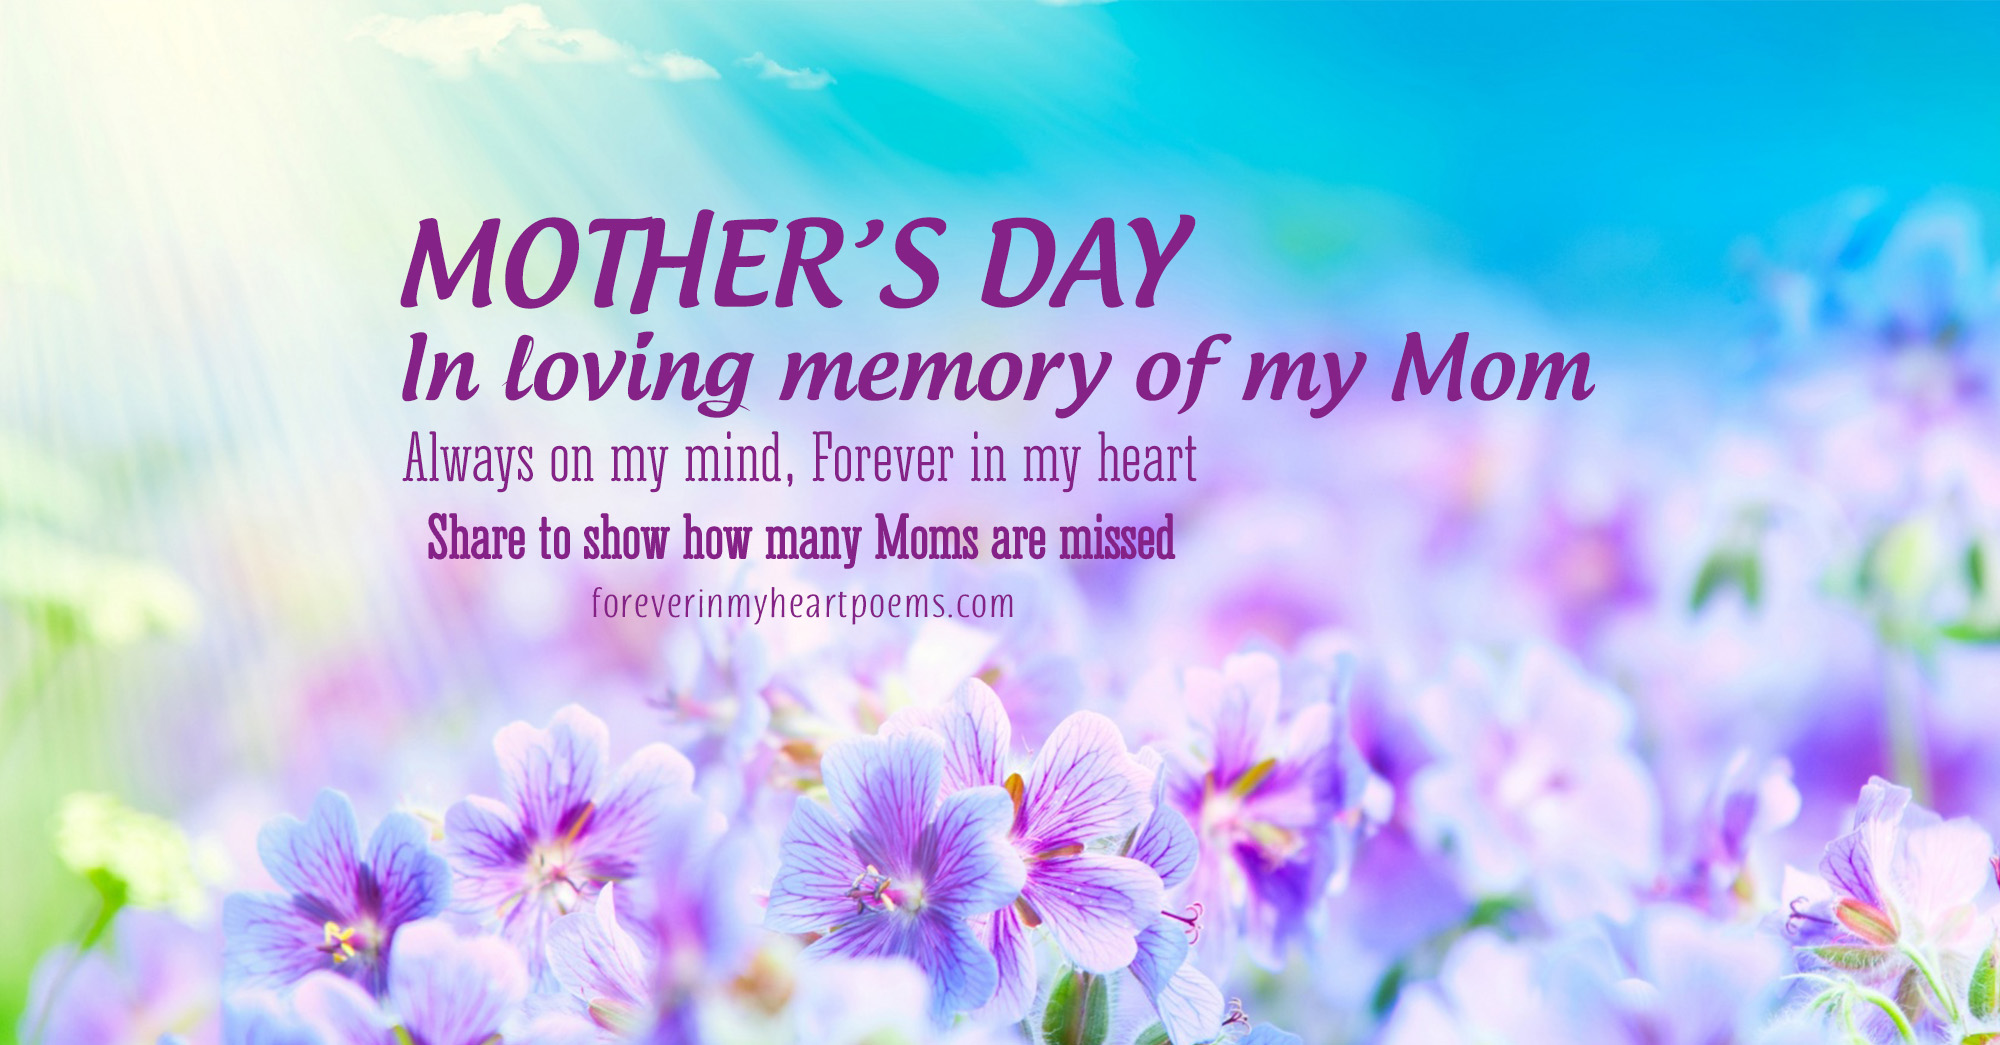 15 Best Missing Mom Quotes On Mothers Day In Loving